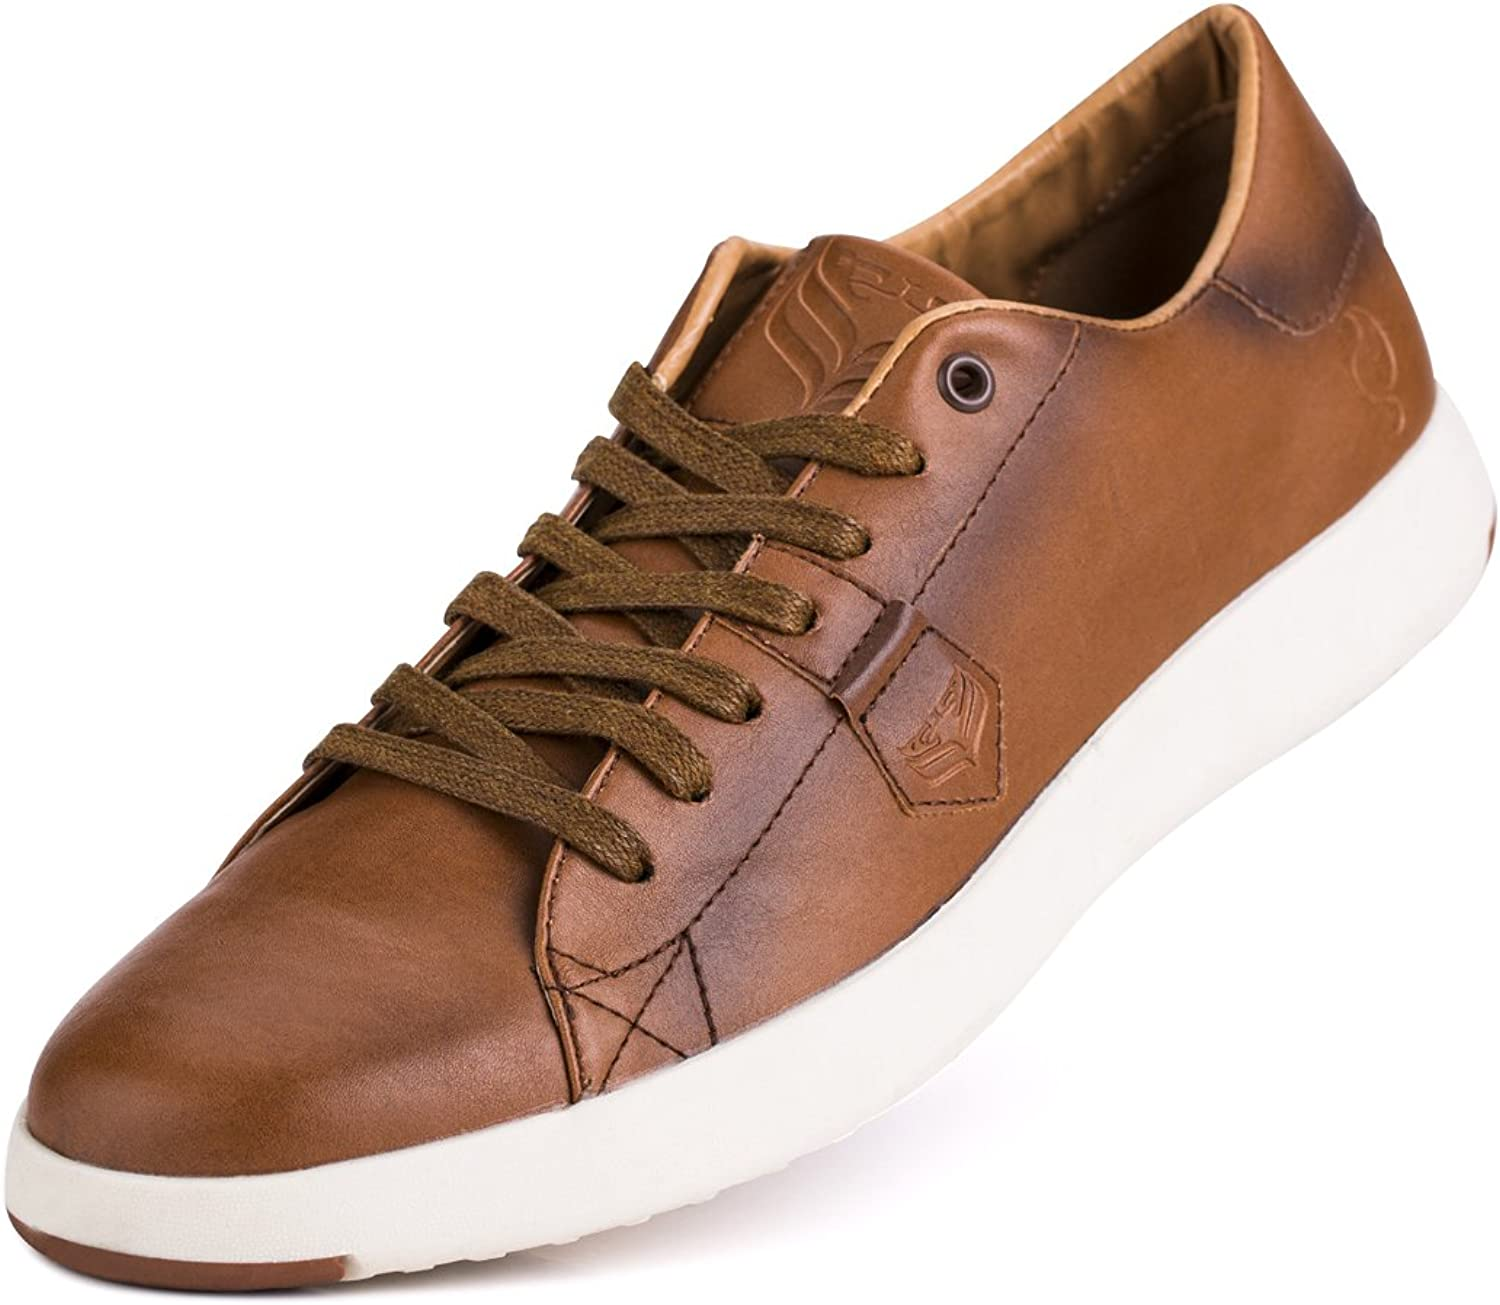 Jivana Men's Sneaker Casual Classic shoes Lace-up bluee Brown White